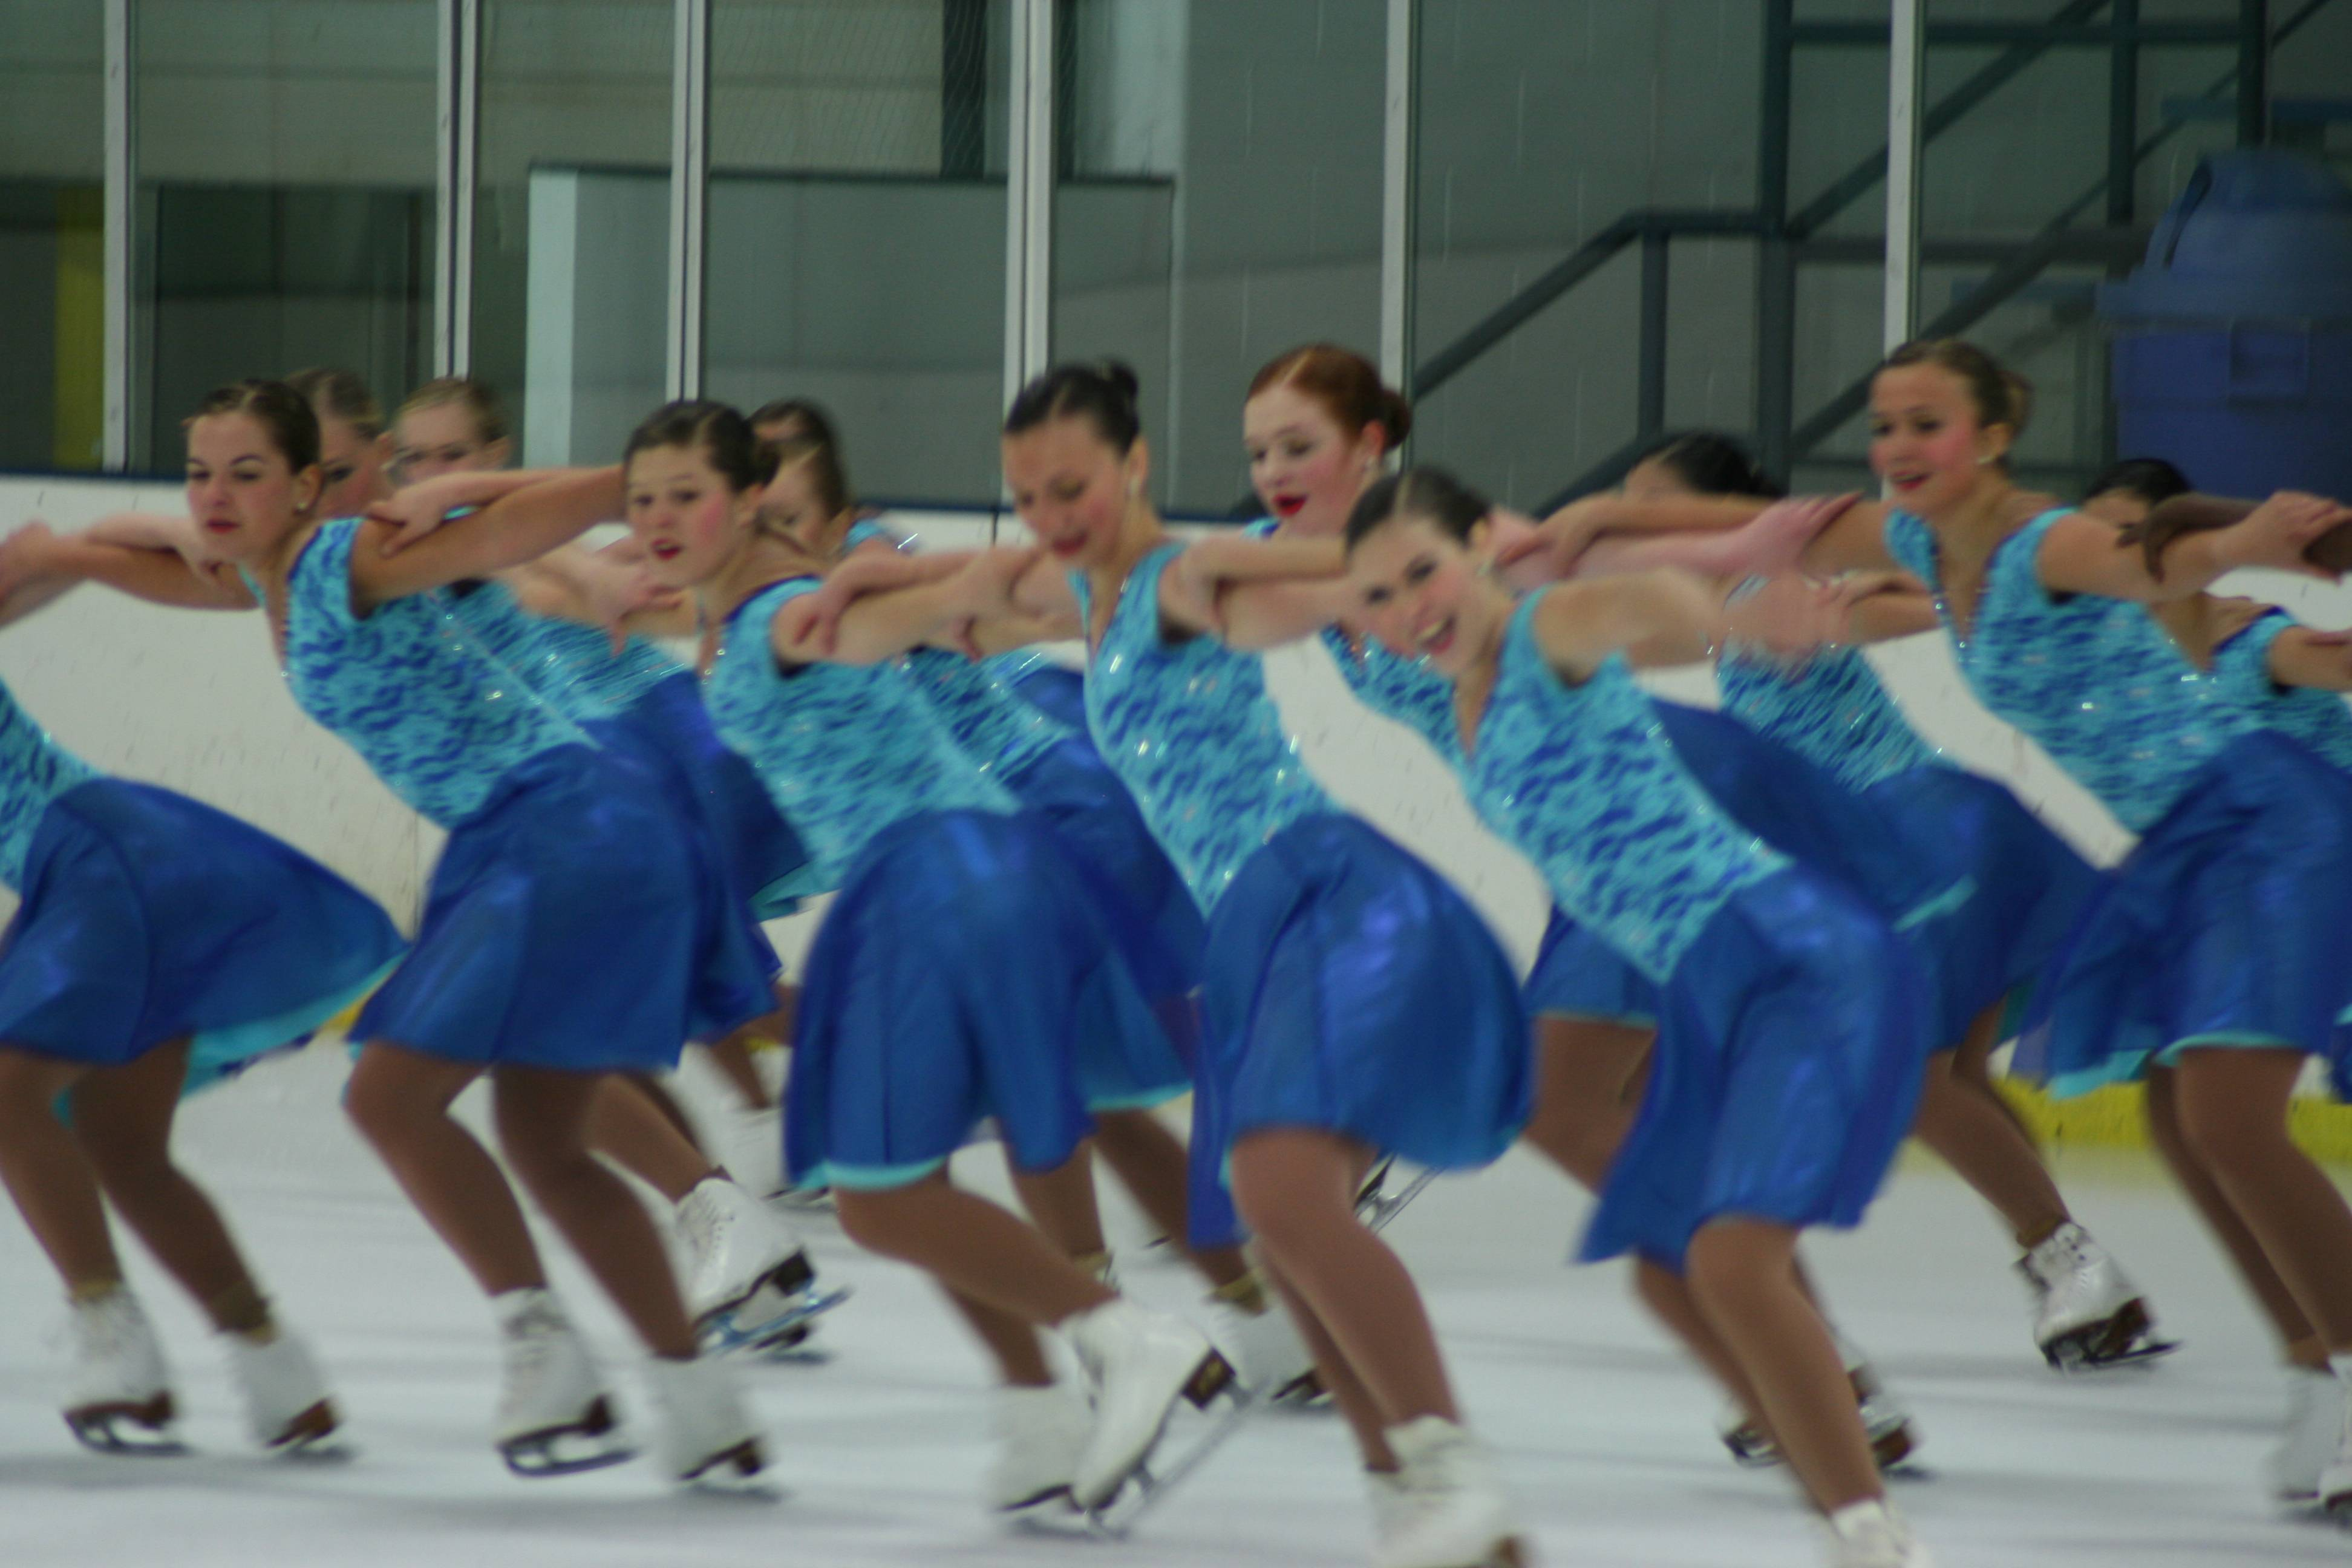 The Senior Team performs at the Starlights November exhibition in Buffalo Grove.